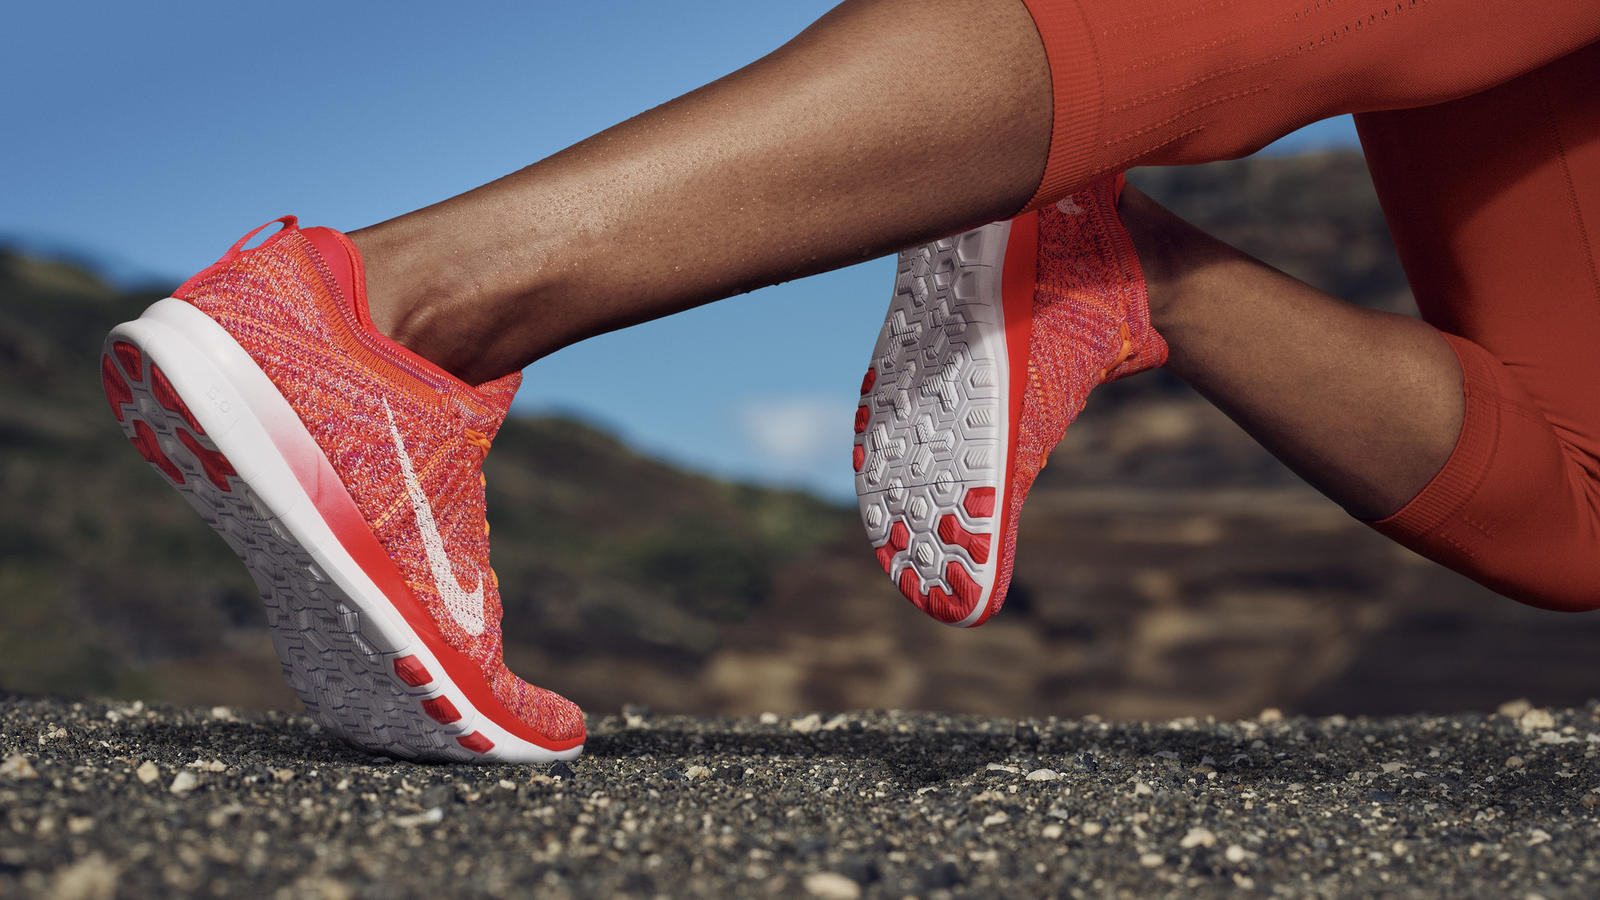 Nike Free TR 5 Flyknit, Fit for Training - Nike News